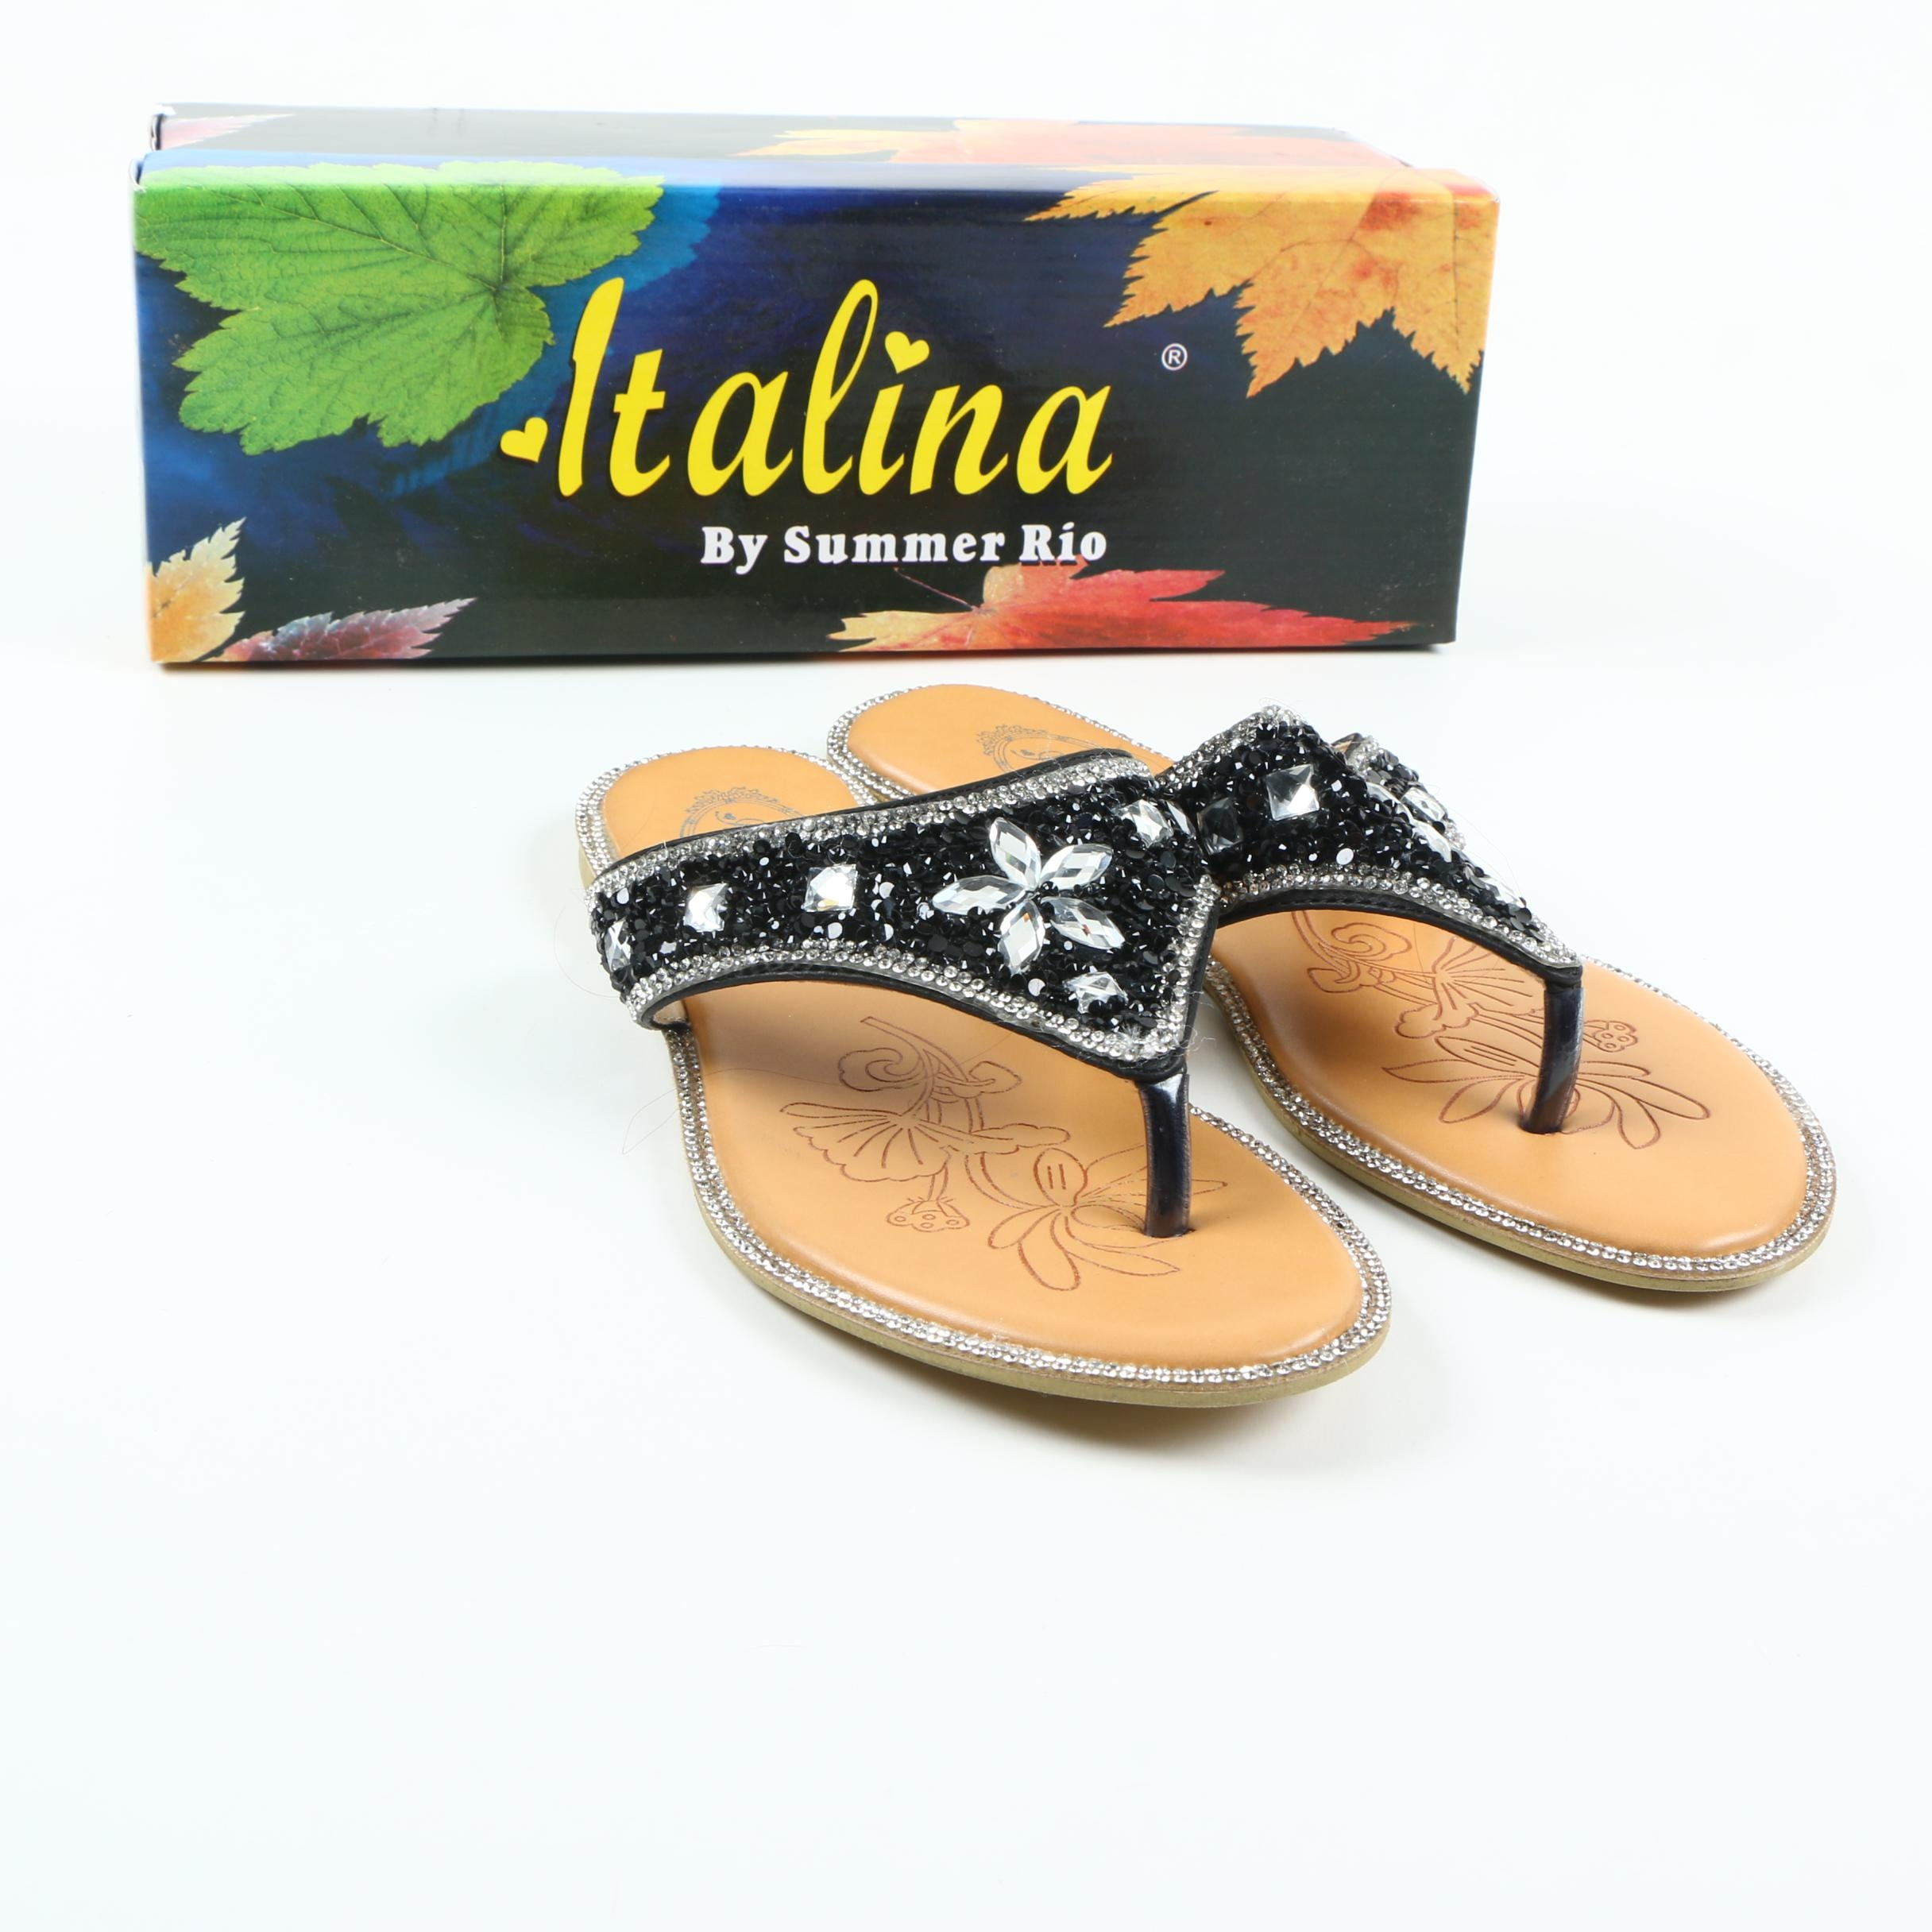 Italina by Summer Rio Bejeweled Sandals